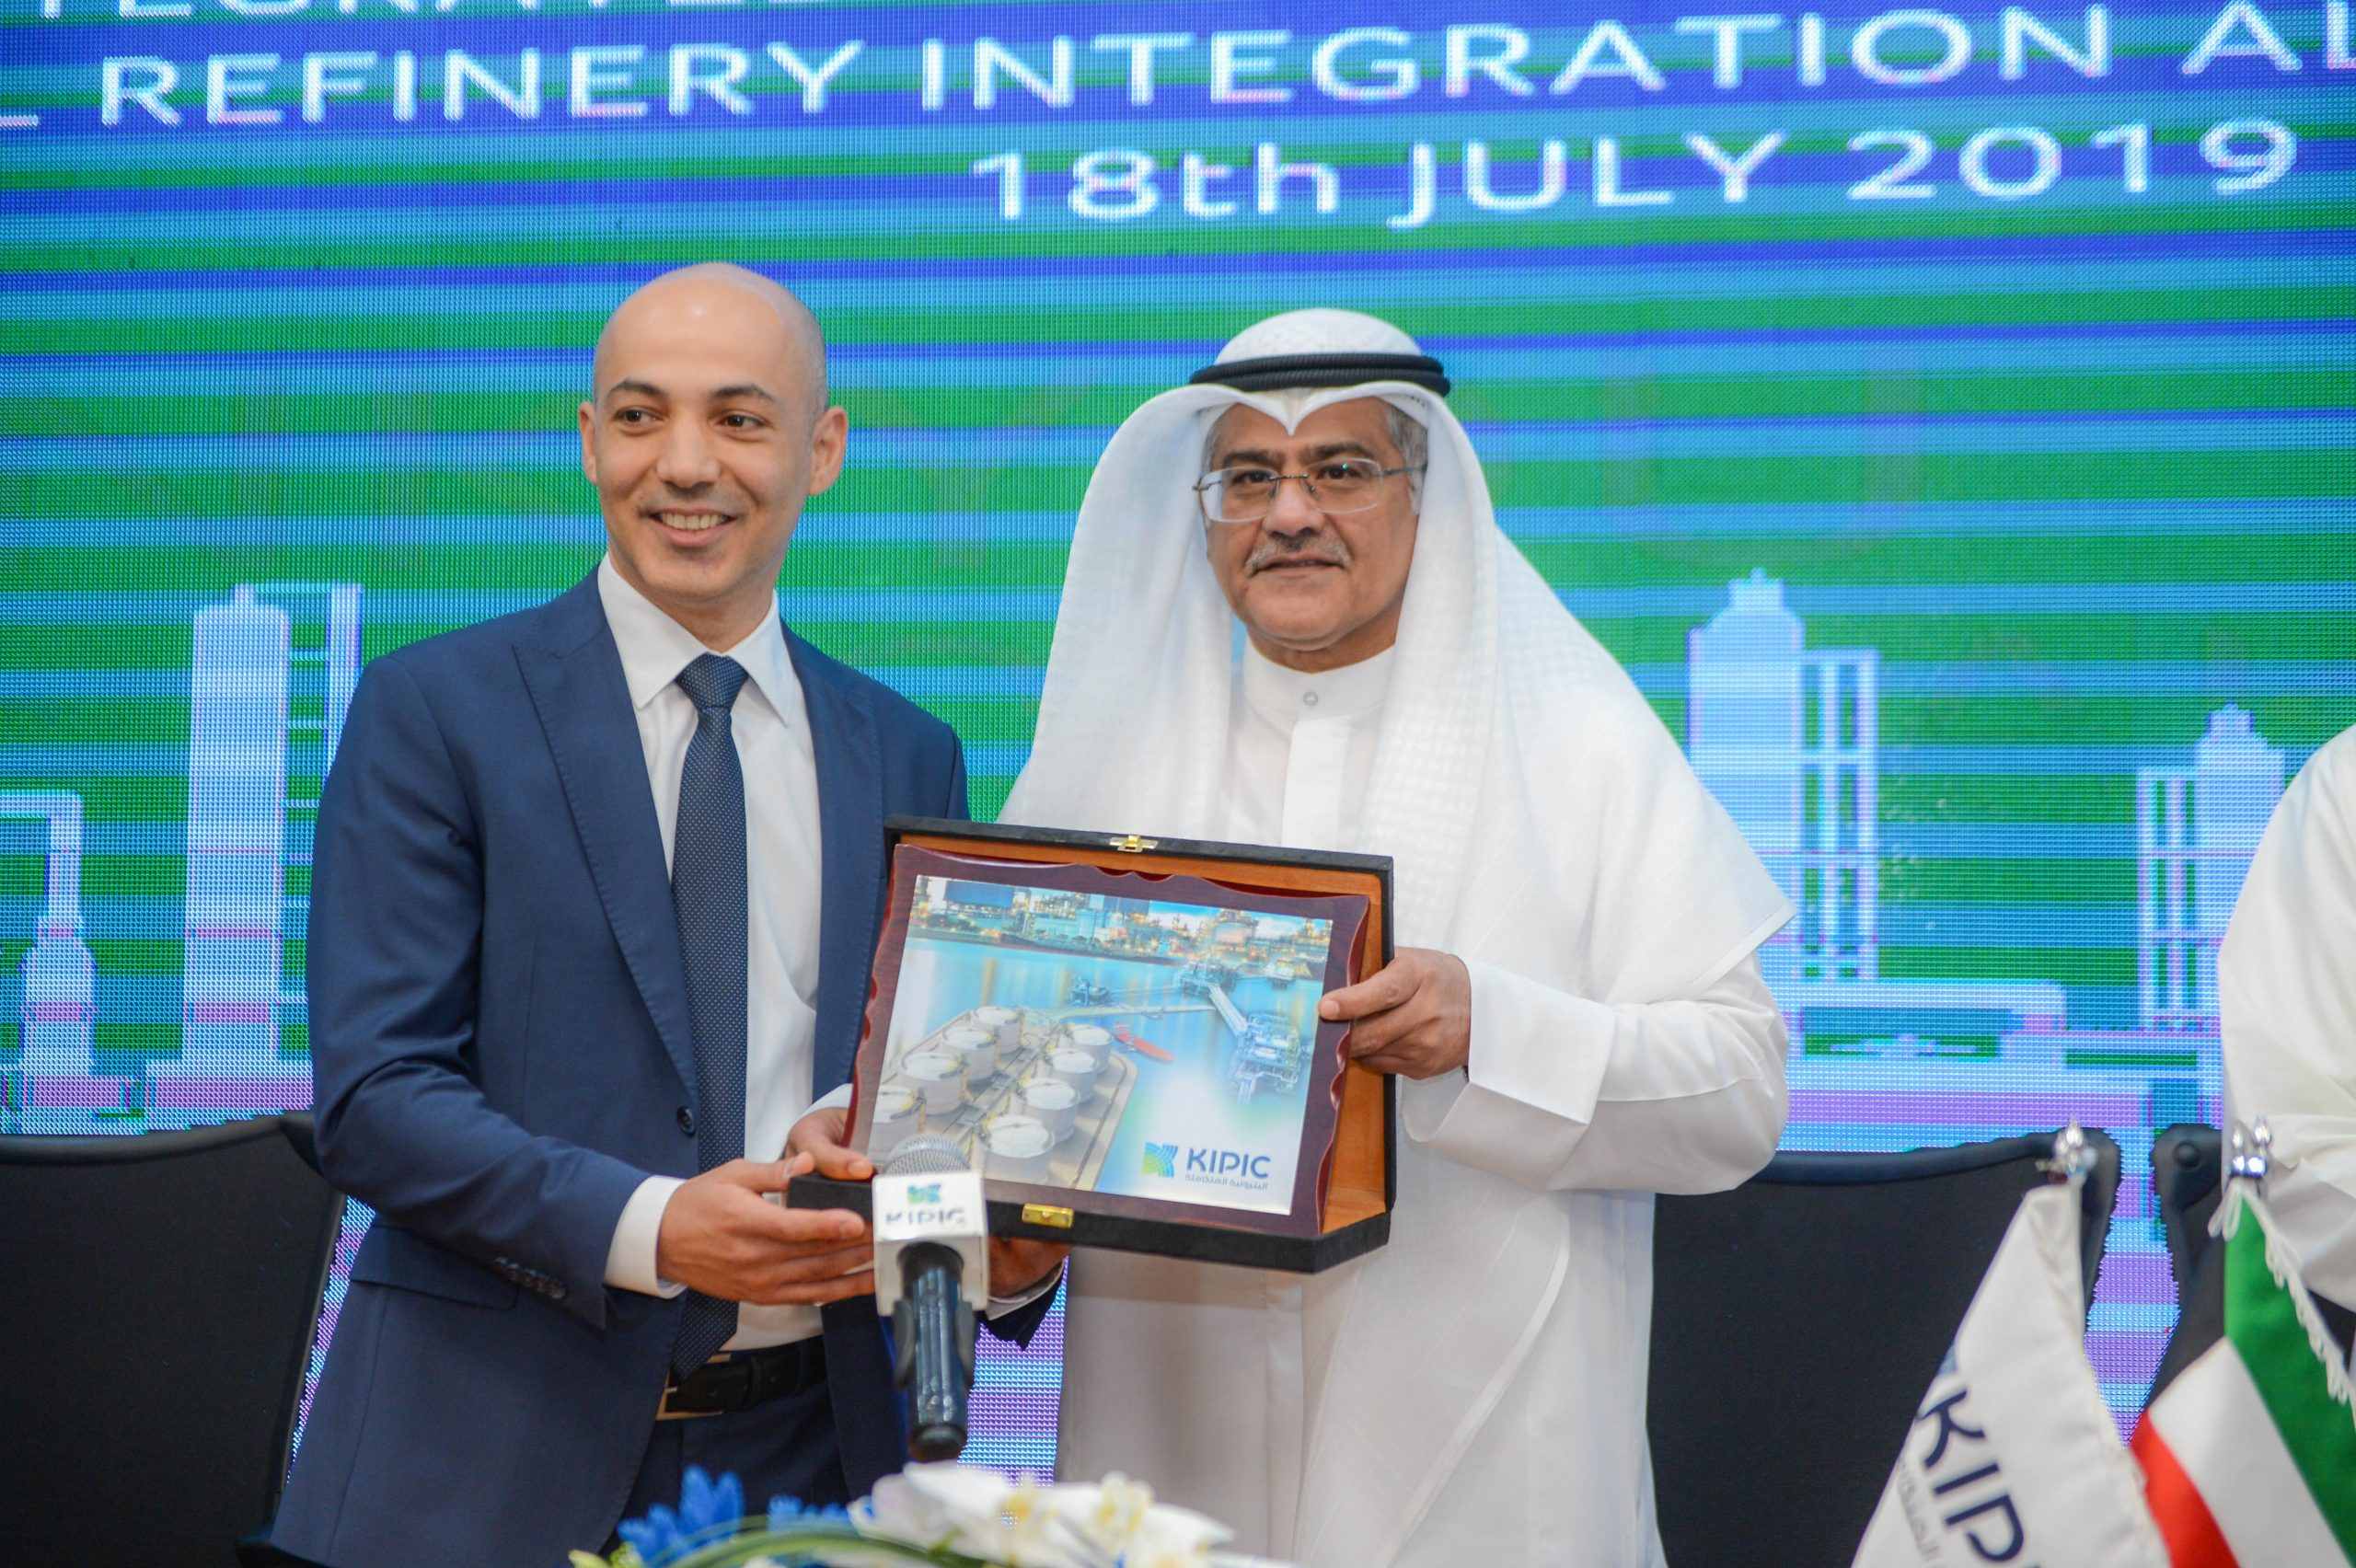 Kipic selects honeywell as main automation contractor for the middle east's largest integrated refinery complex